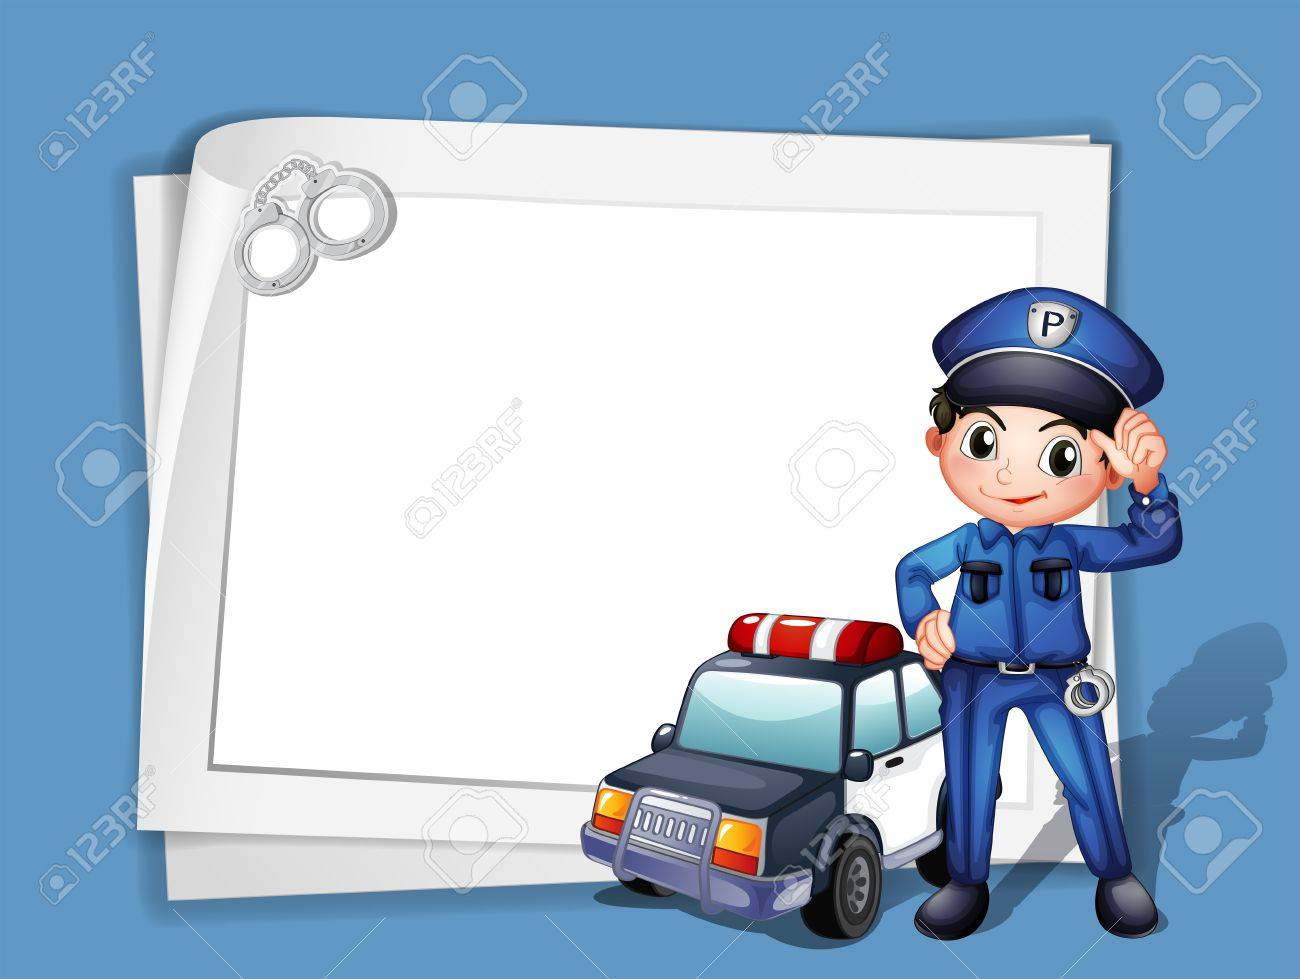 Illustration Of A Policeman Beside A Police Car On A Blue 1300x979